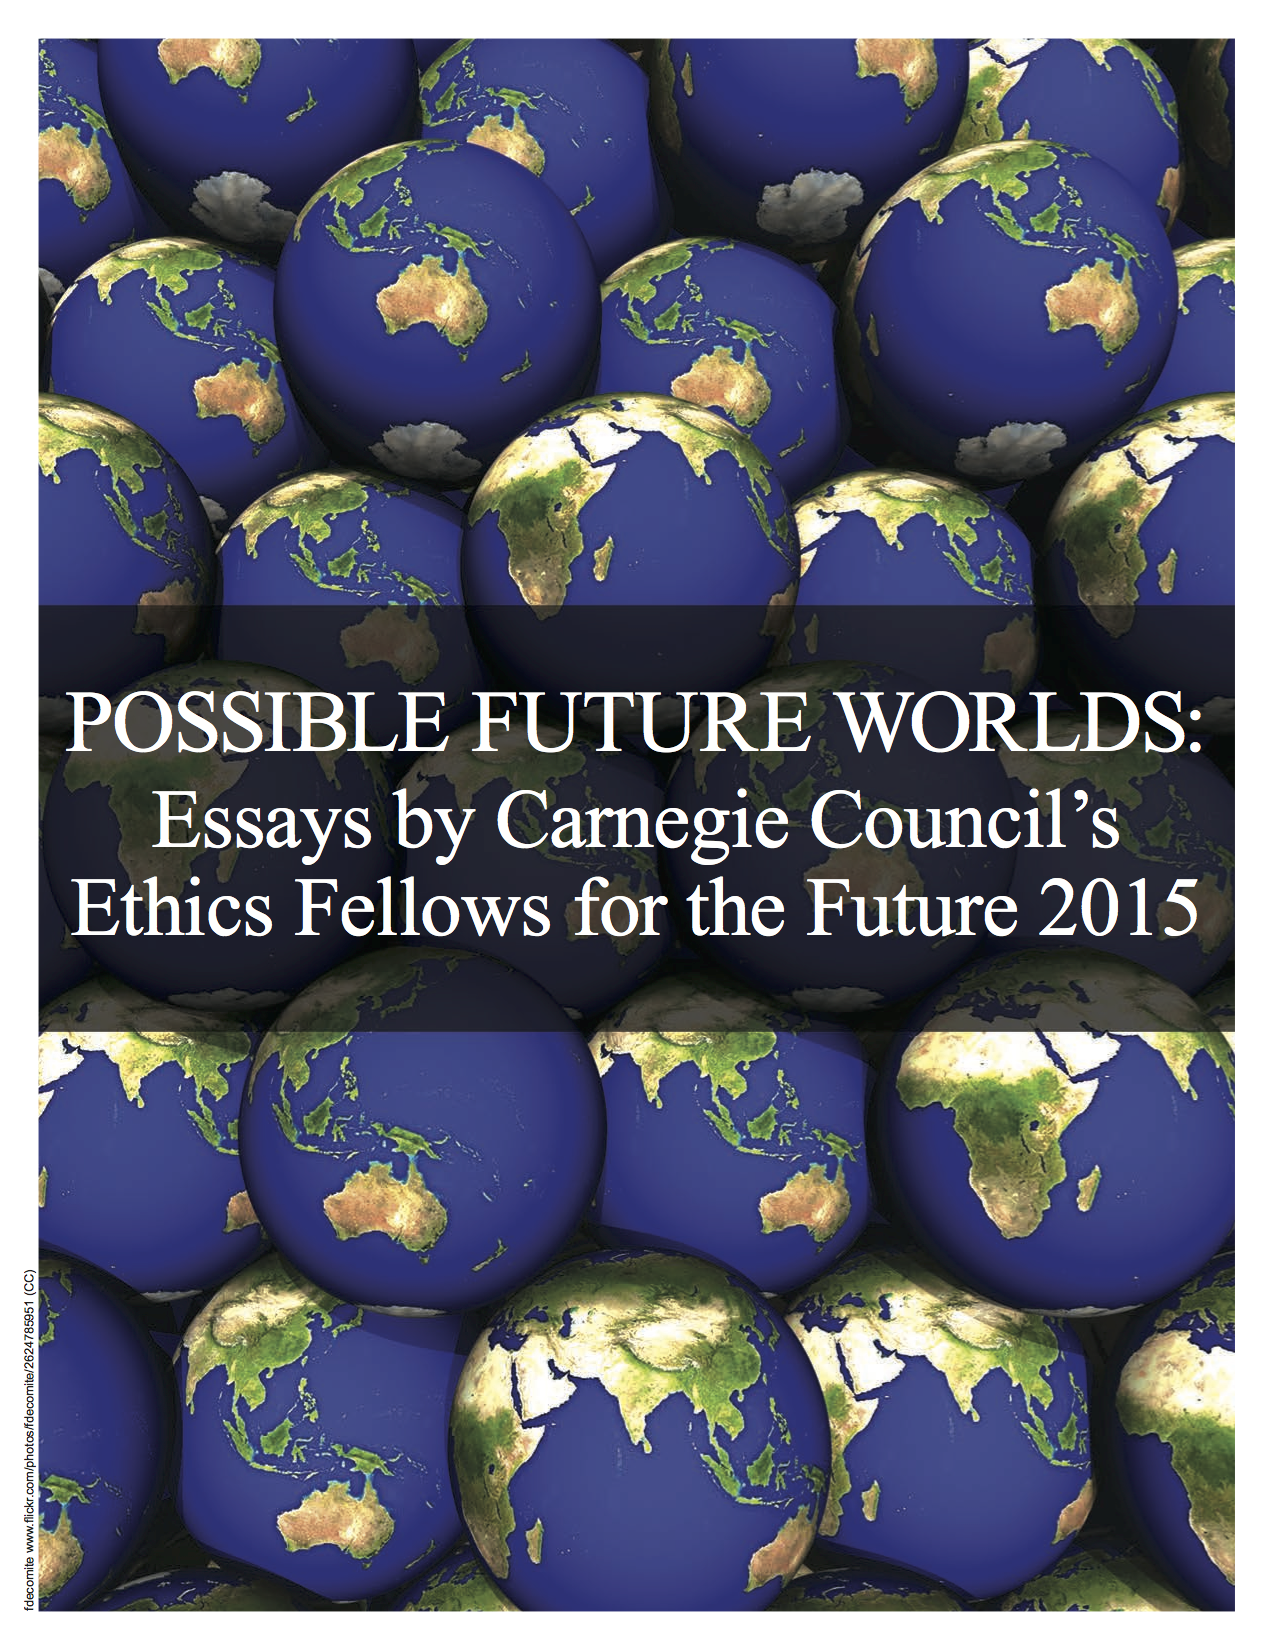 carnegie council ethics fellows for the future essays of all essays by carnegie council s ethics fellows for the future 2015